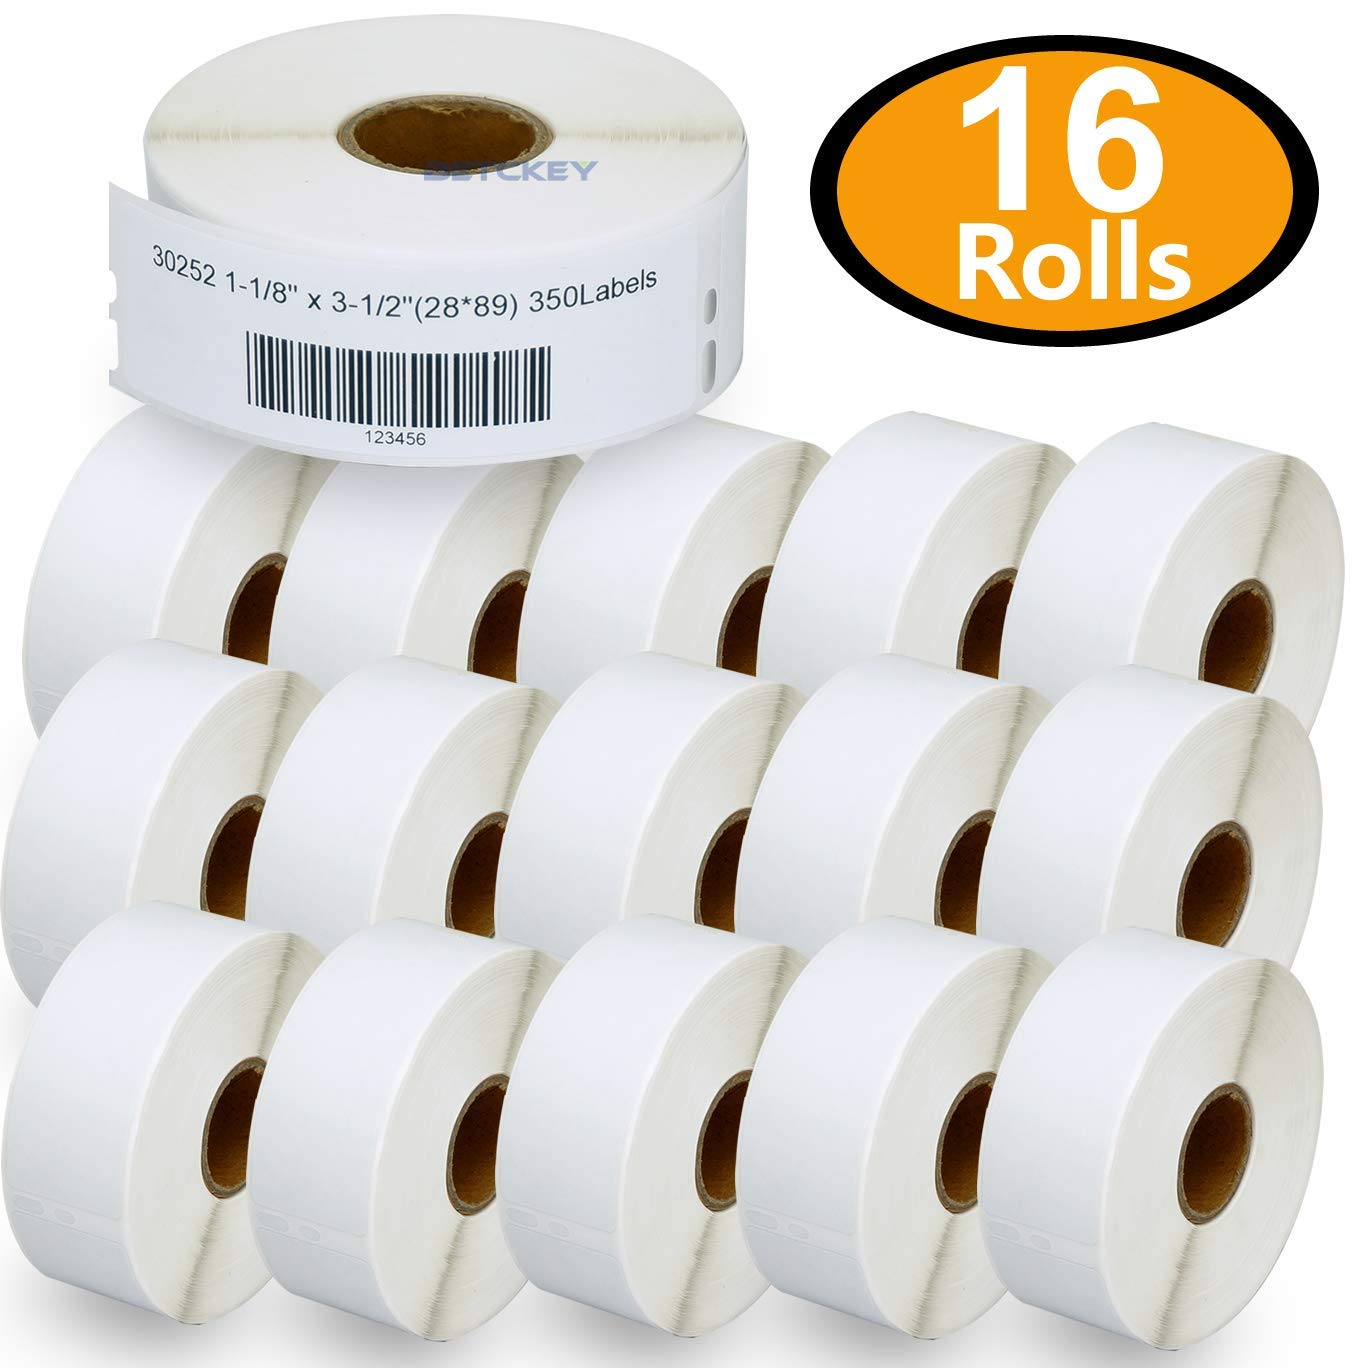 16 Rolls DYMO 30252 Compatible 1-1/8'' x 3-1/2''(28mm x 89mm) Self-Adhesive Address Labels,Compatible with Dymo 450, 450 Turbo, 4XL and Many More by BETCKEY